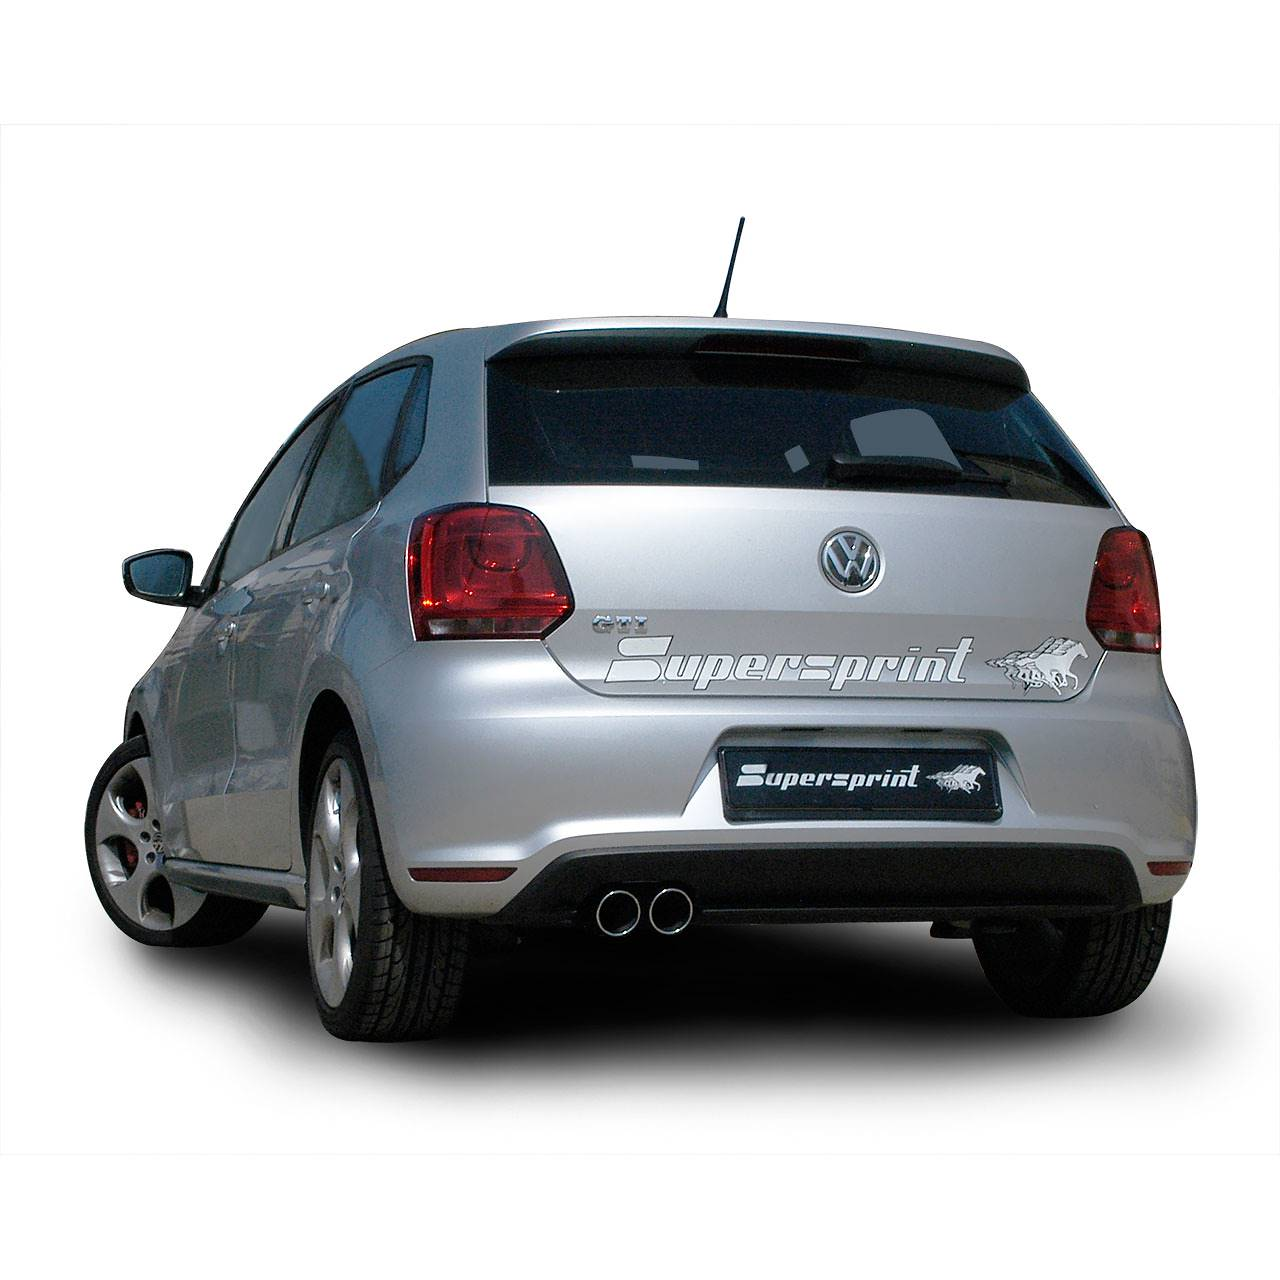 vw polo 6r gti 1 4 tsi 3d 5d 180 hp 2010 volkswagen exhaust systems. Black Bedroom Furniture Sets. Home Design Ideas